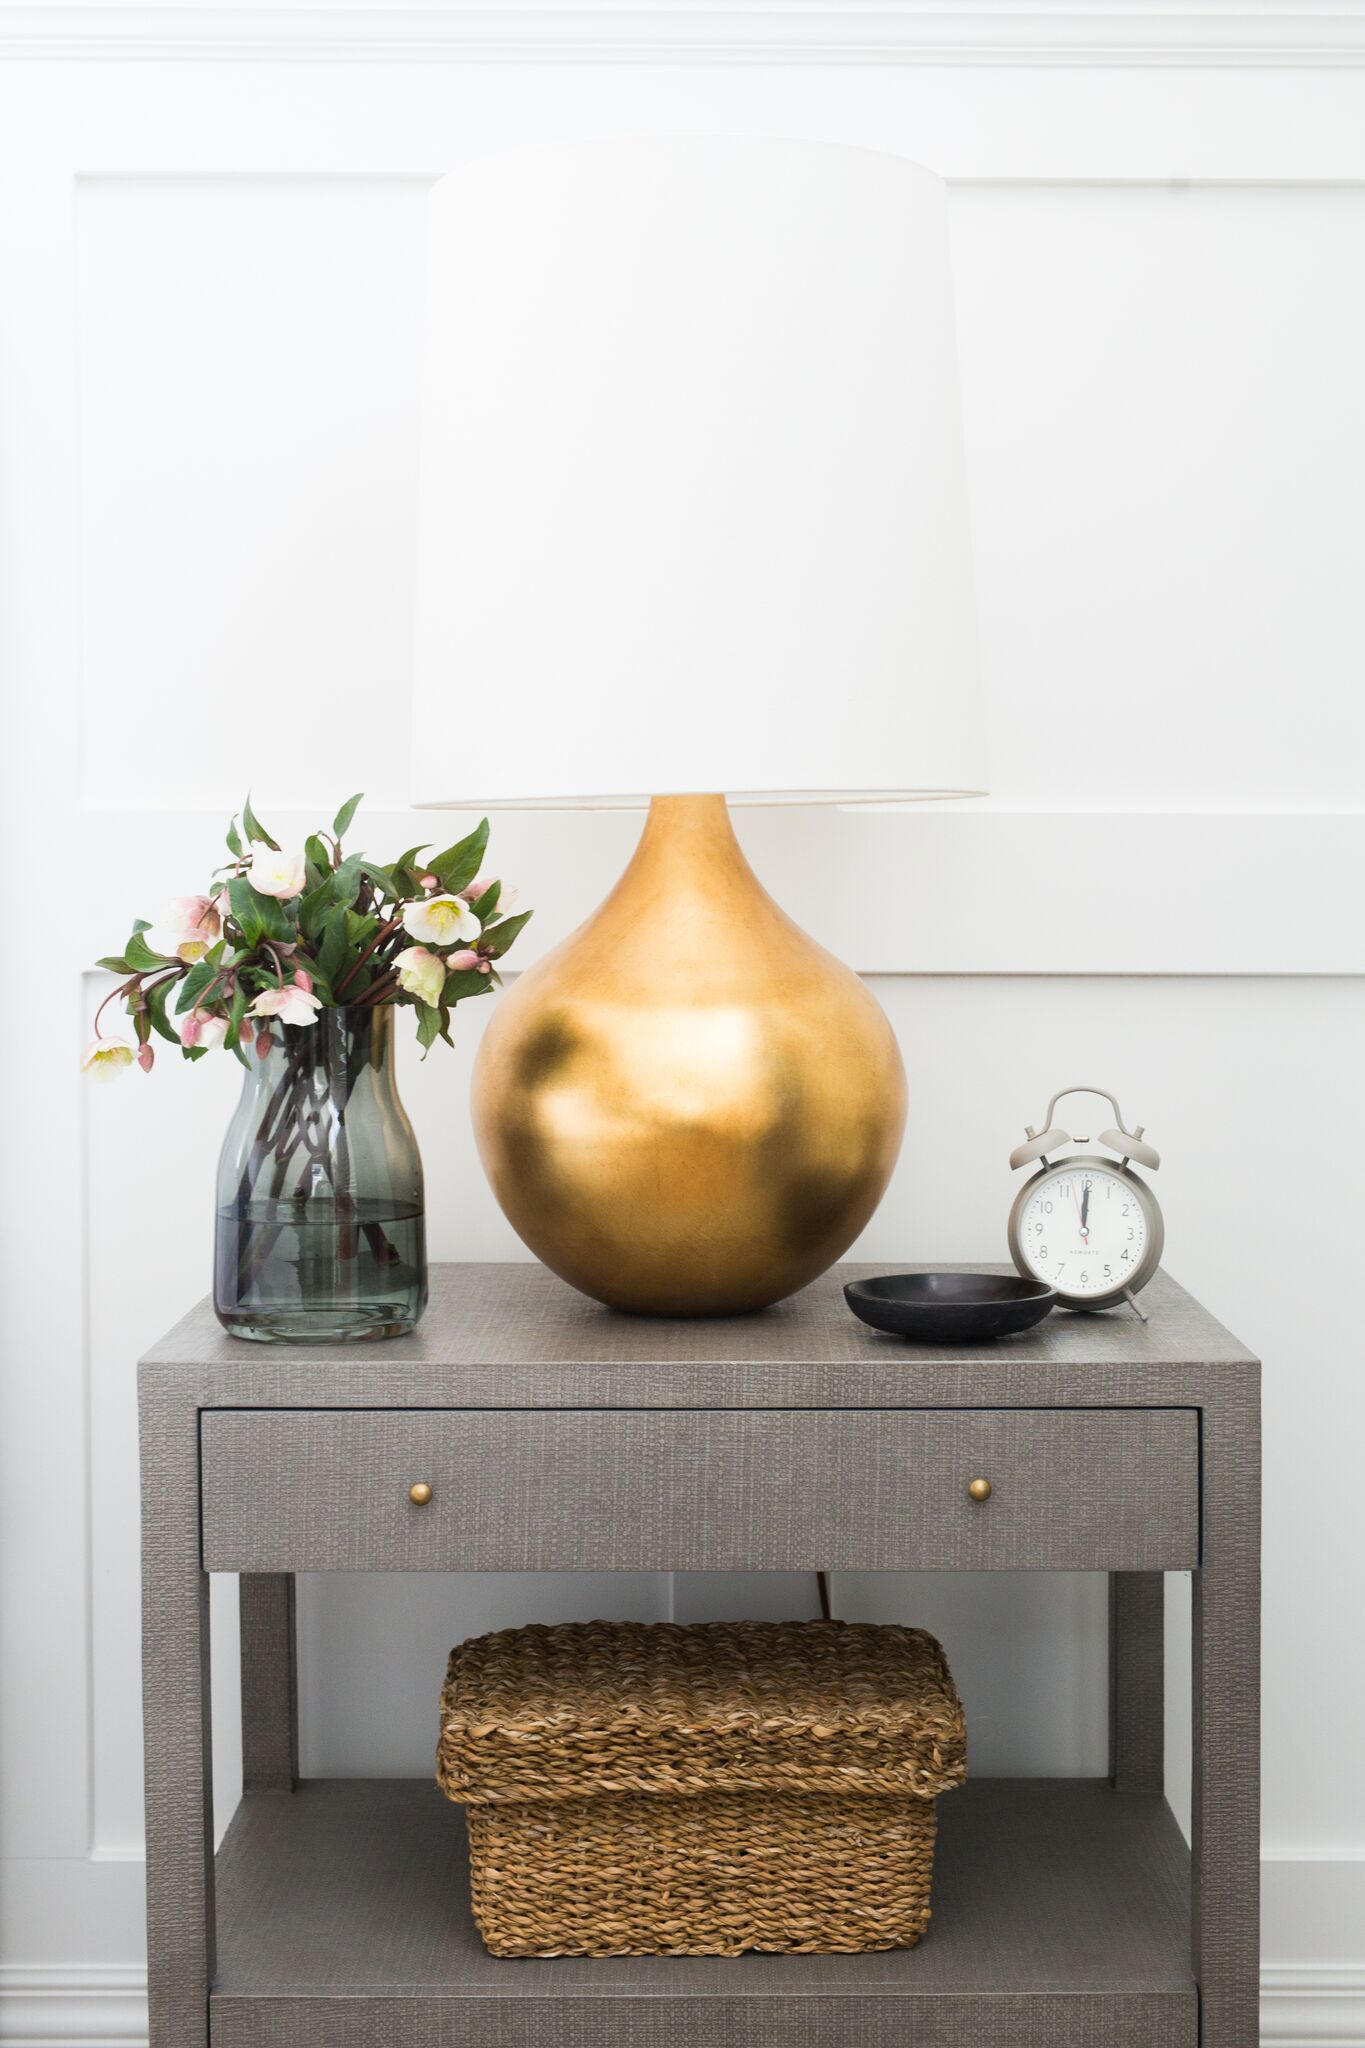 Large golden lamp on top of wooden hutch